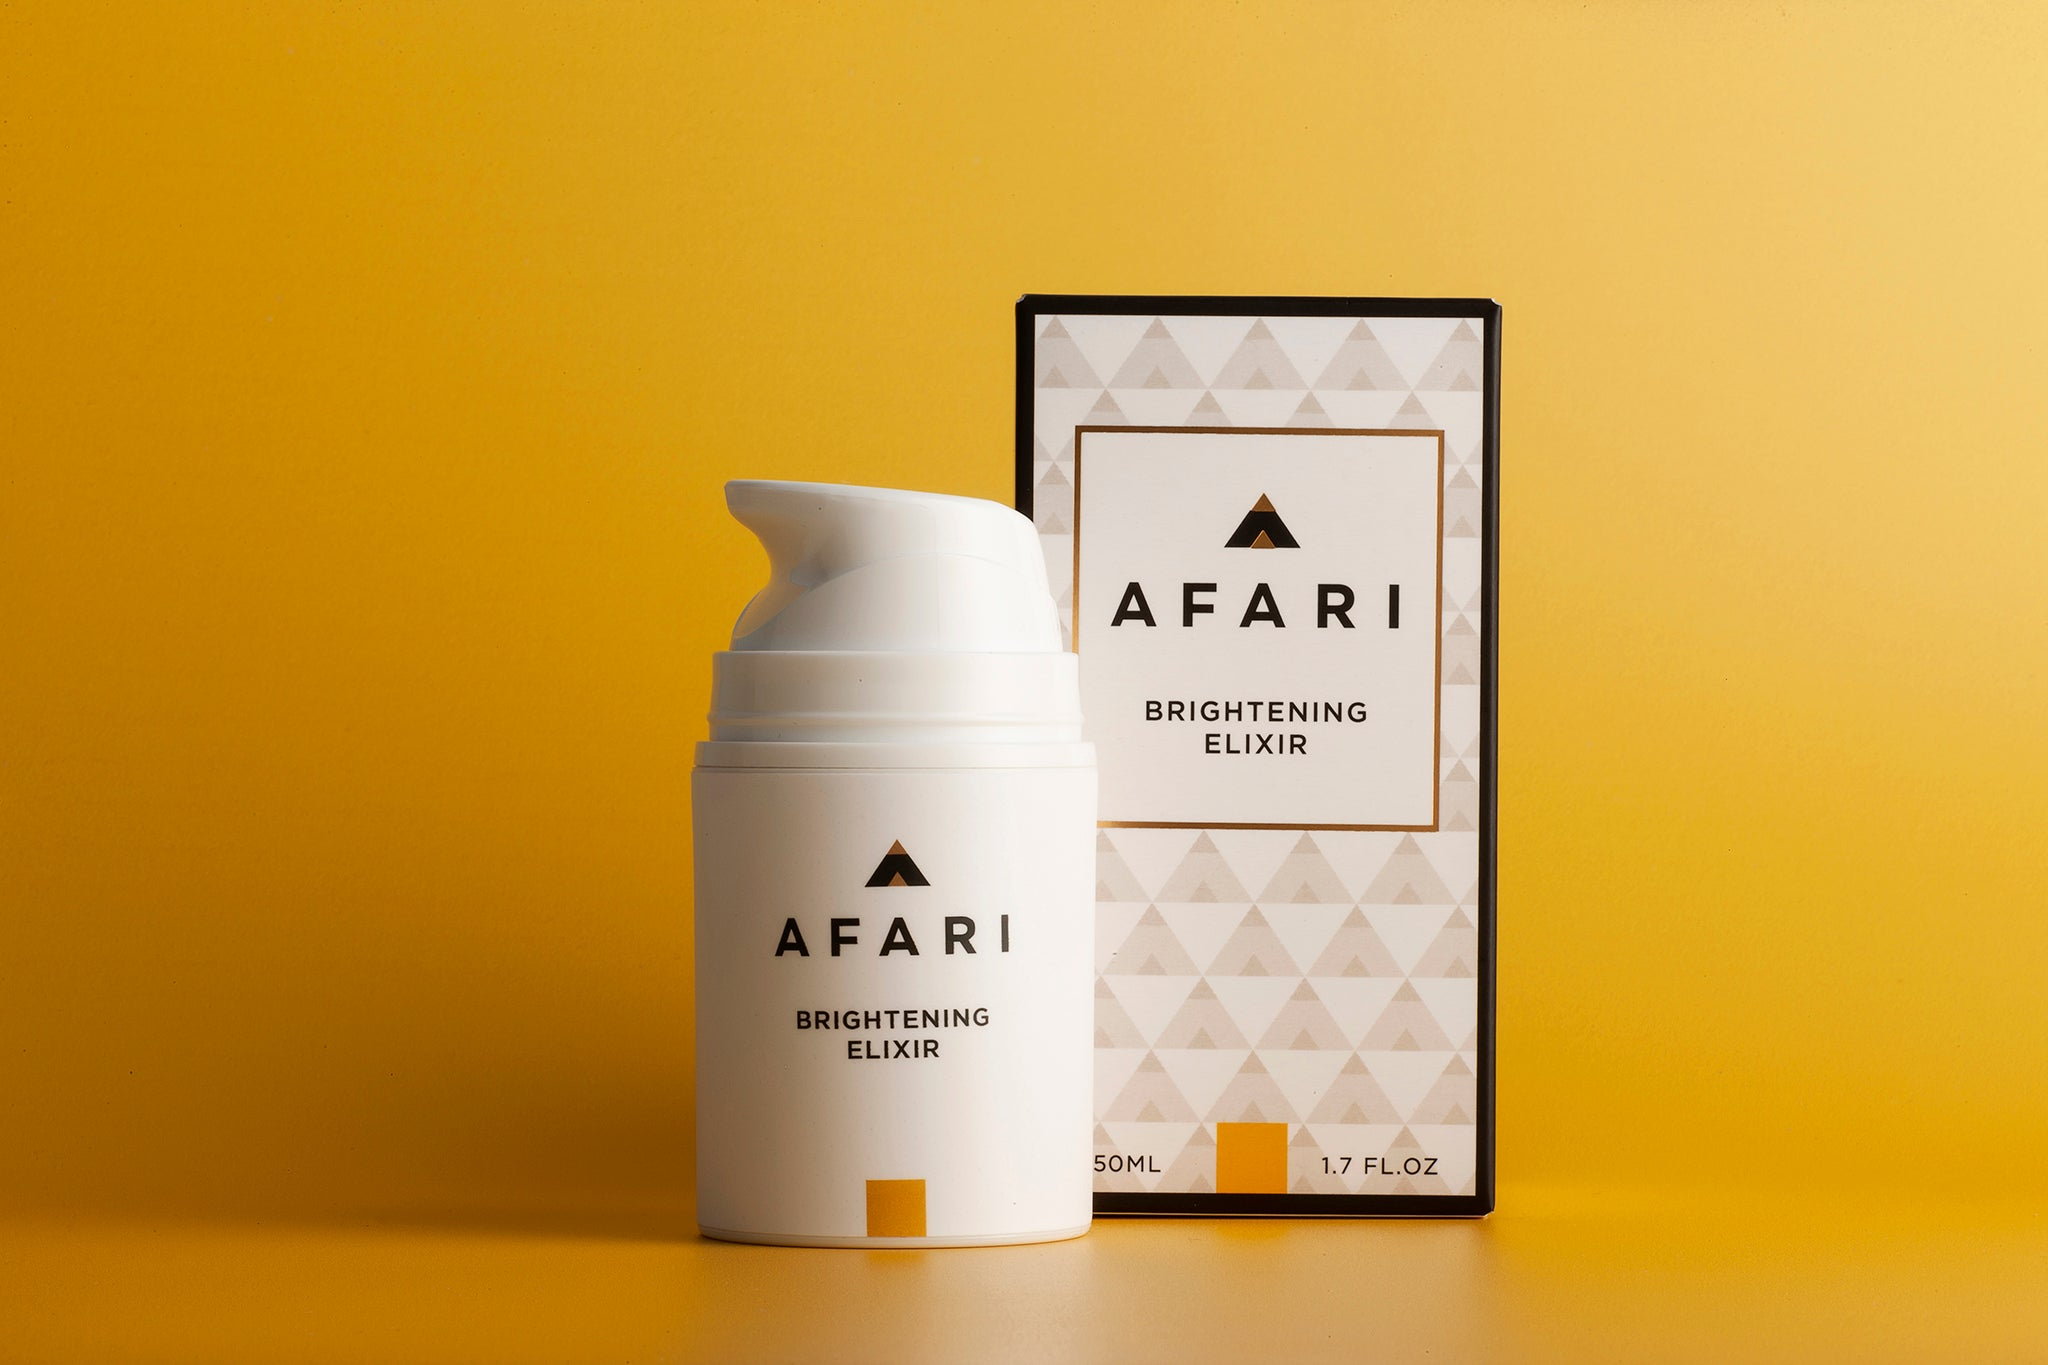 Brightening Elixir - Shop Face online - Afari Skincare South Africa active ingredient, afari, brightening, brightening elixir, clean, color_#AE6659, even skin, serum, skincare